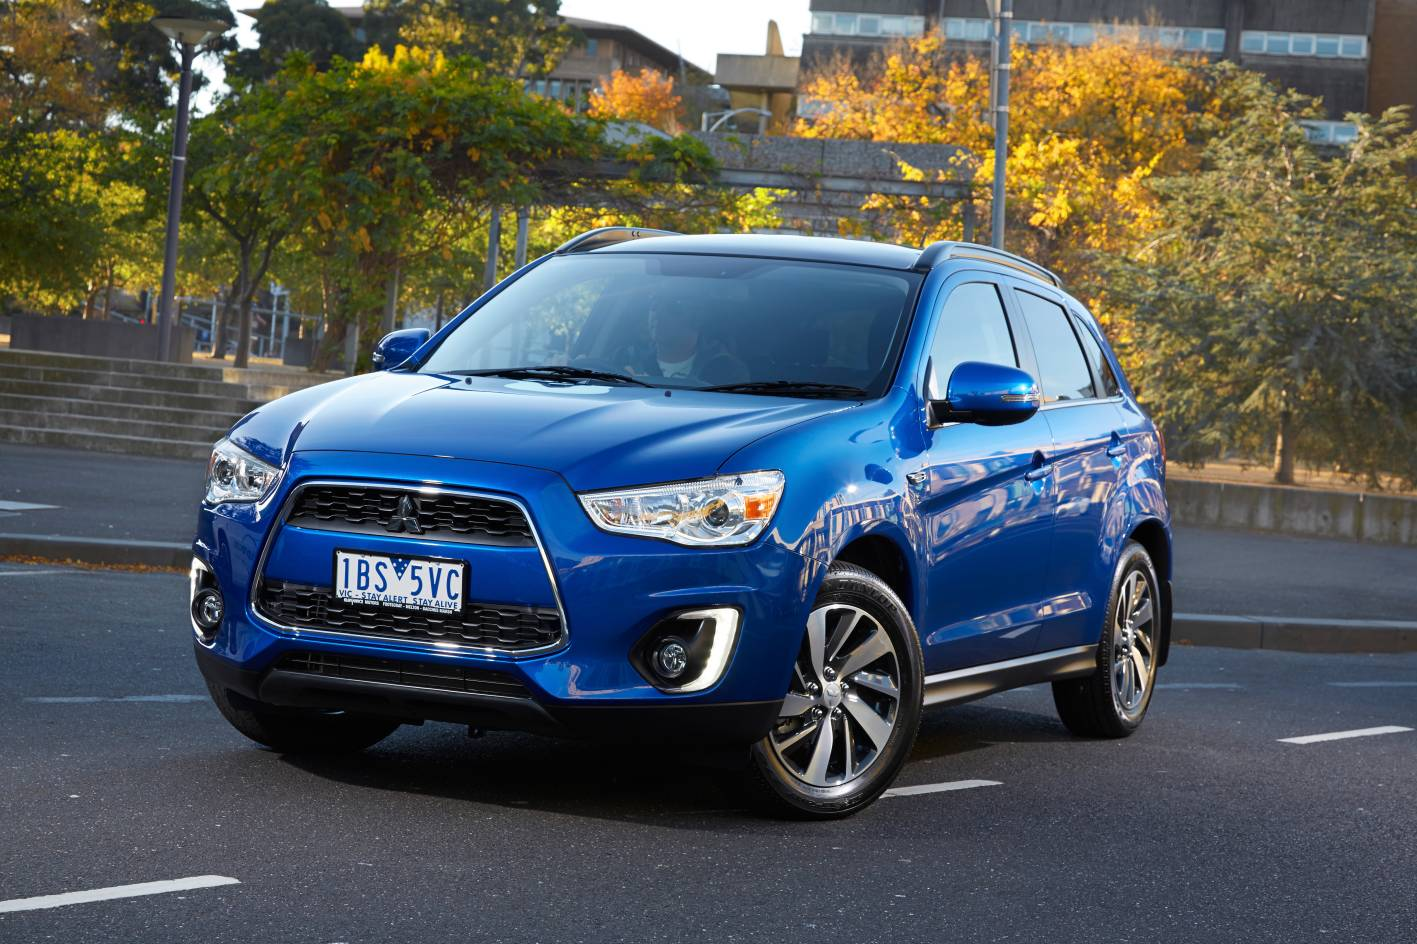 Mitsubishi Cars News My15 Asx On Sale Now From 24 990